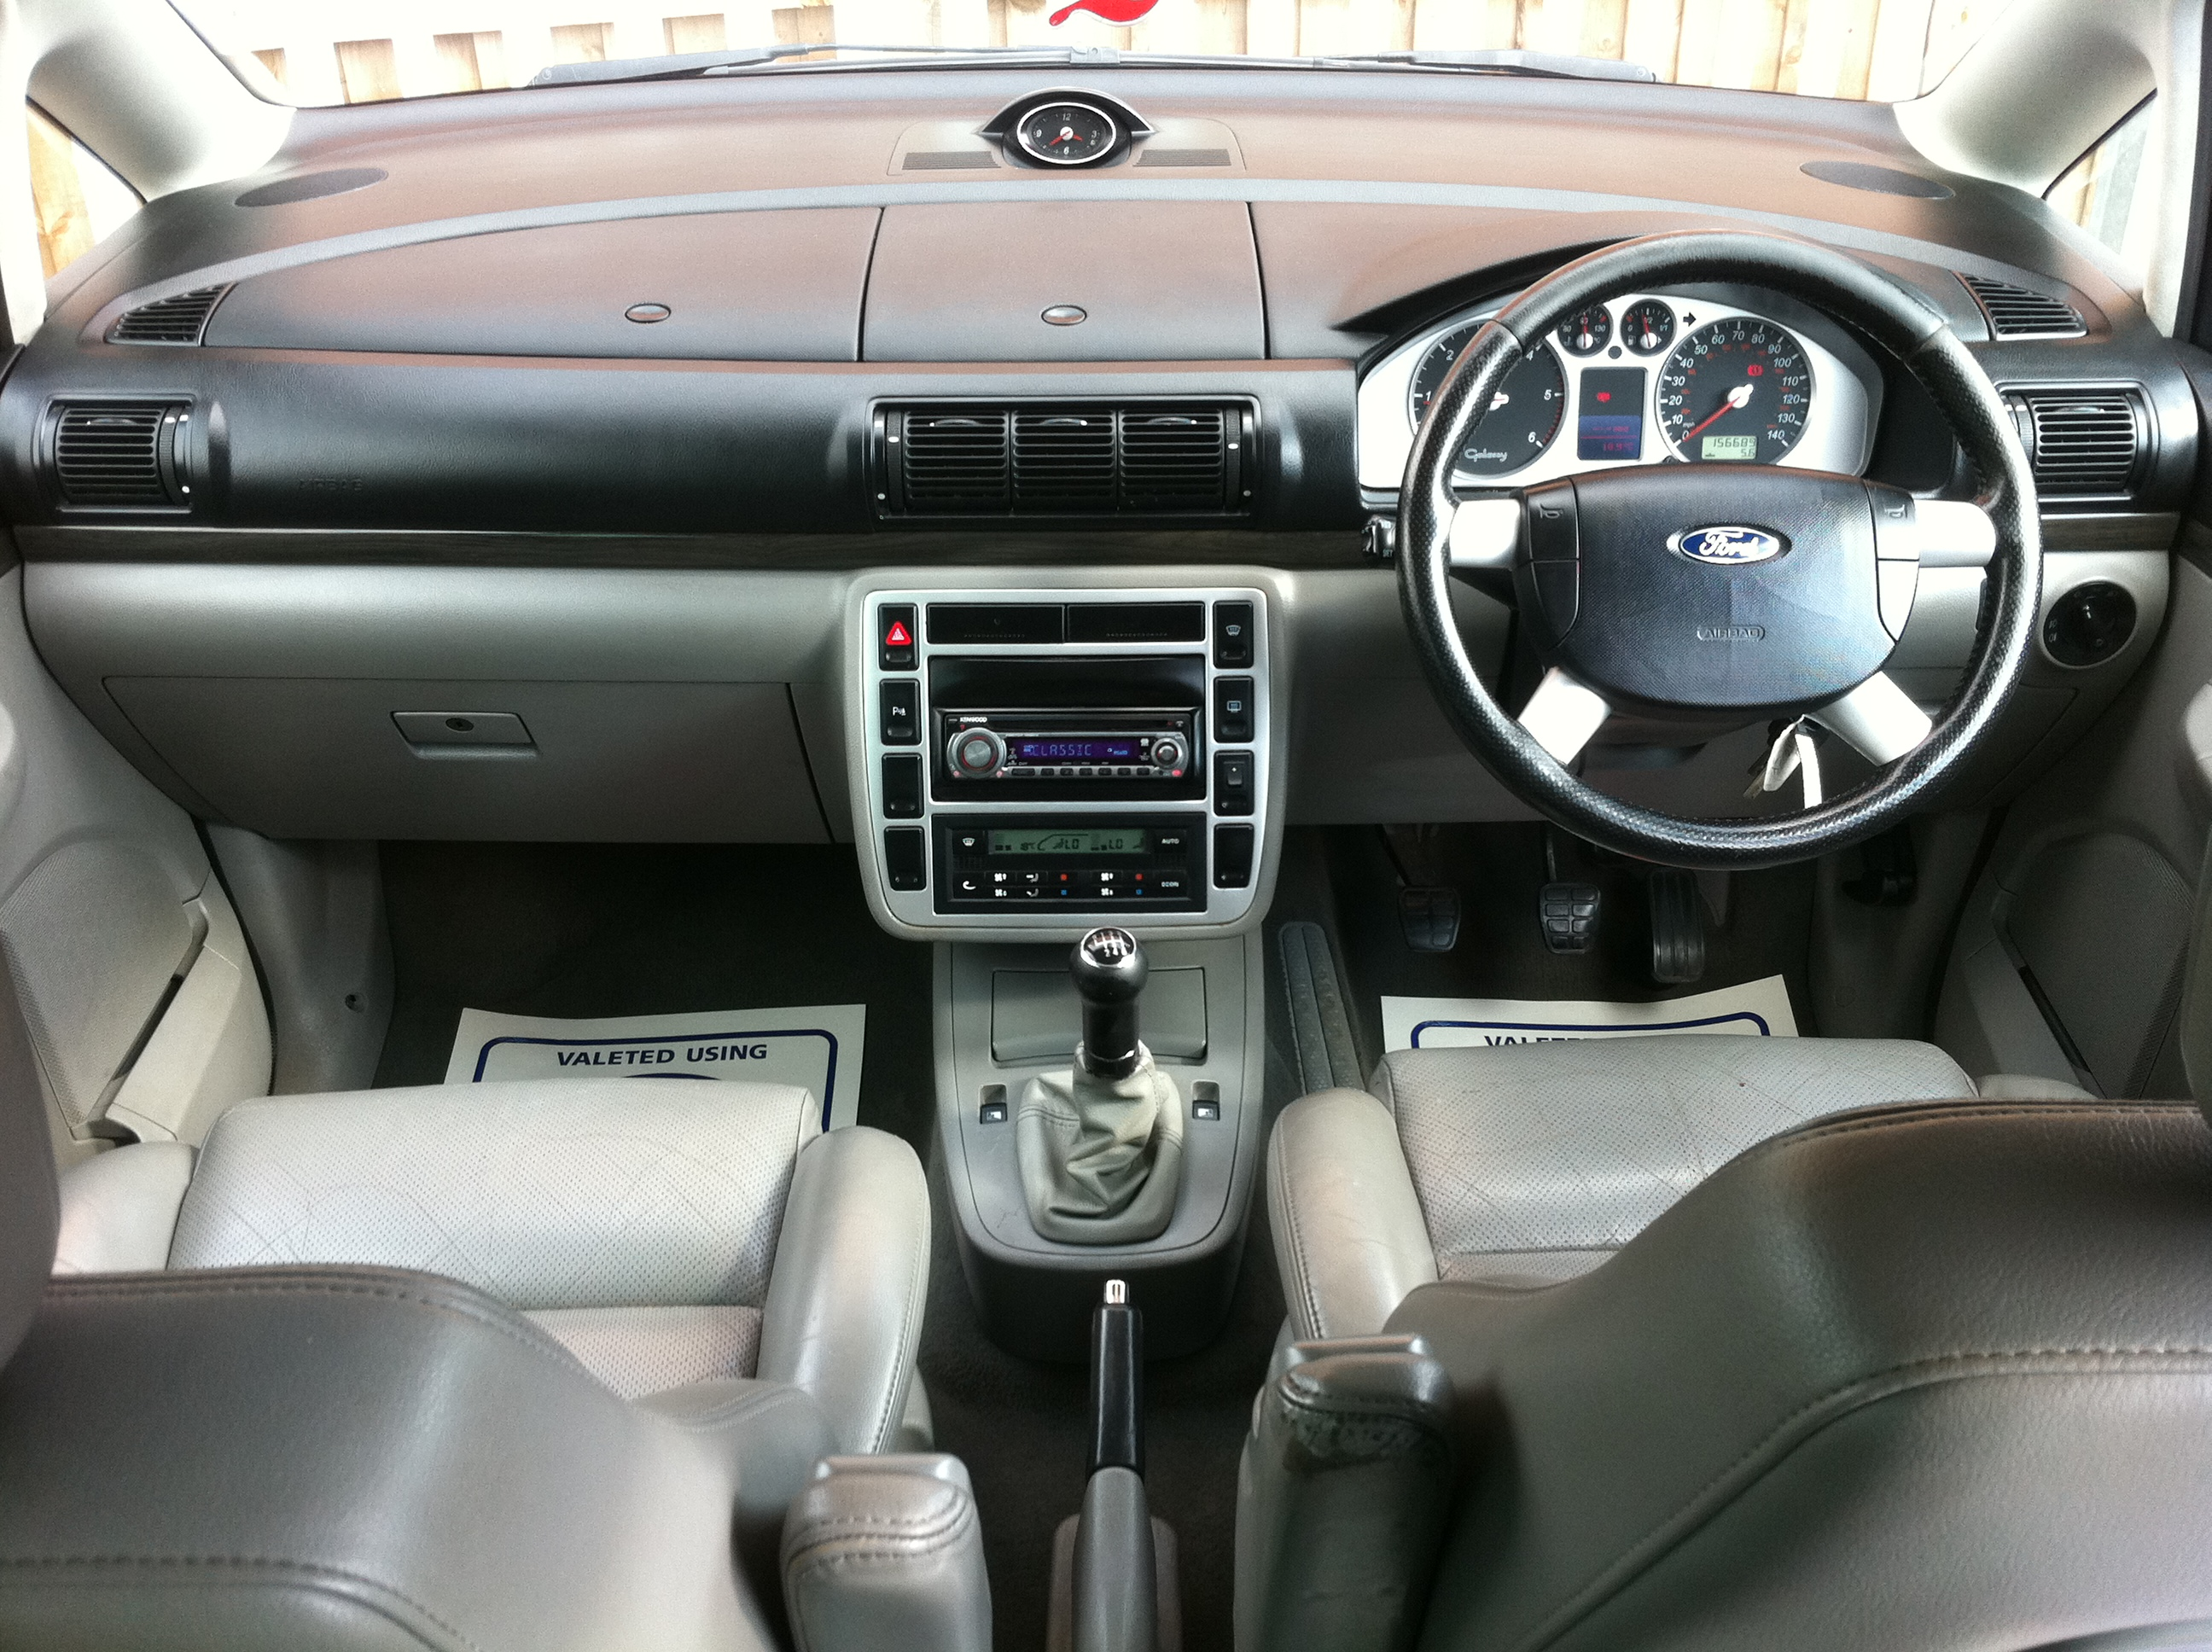 chairs on wheels uk vanguard furniture dining ford galaxy 1.9 td ghia 5dr [115 ps] full service history / 6 seats dvd grey leather ...